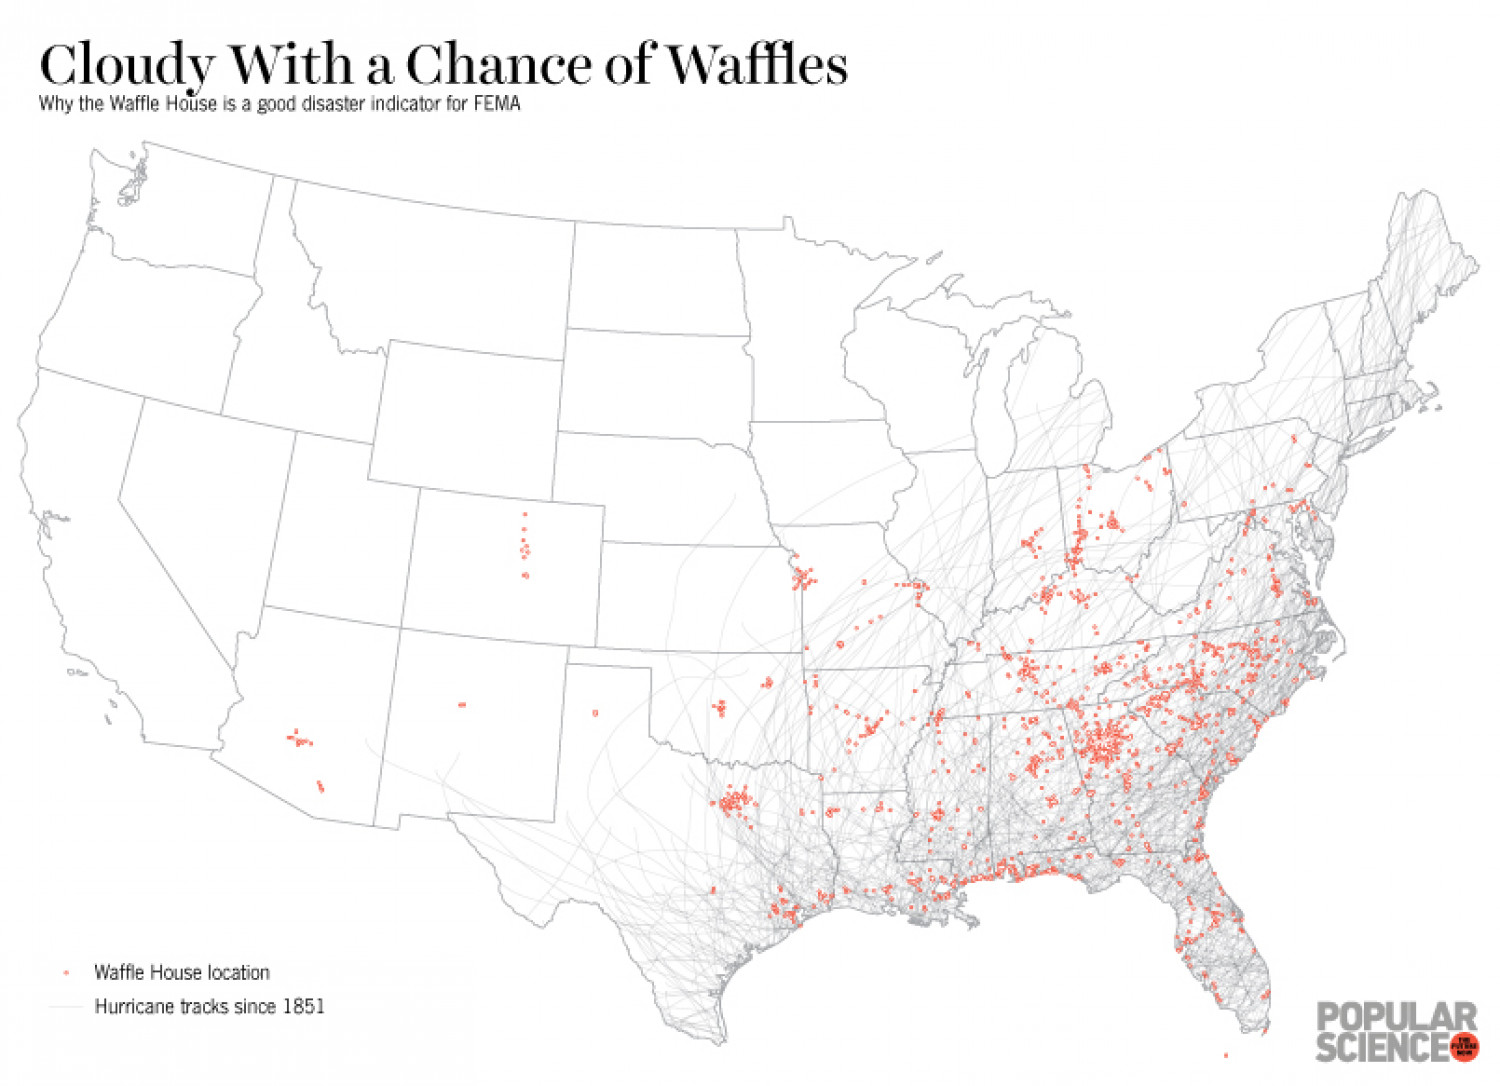 Cloudy With a Chance of Waffles Infographic